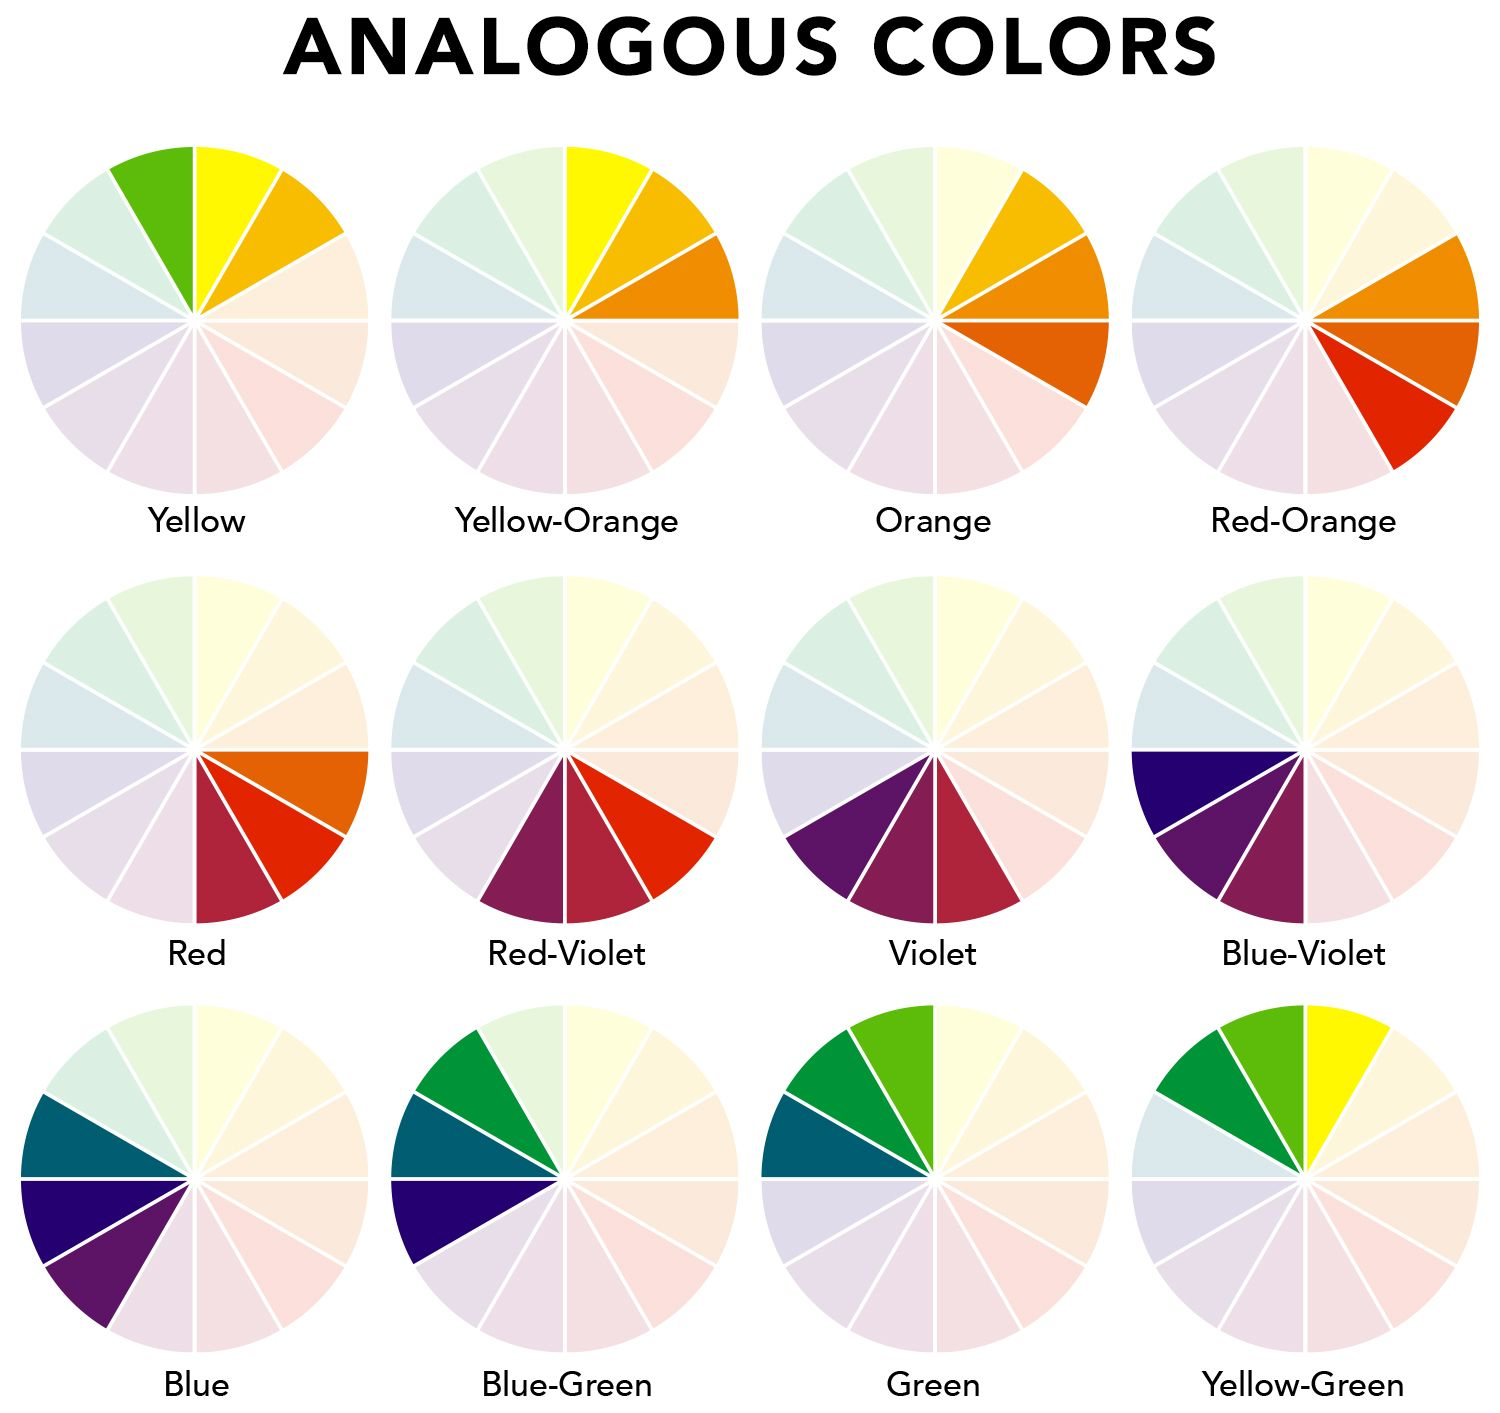 What Is An Analogous Color Scheme? Analogous Color Scheme Room Ideas